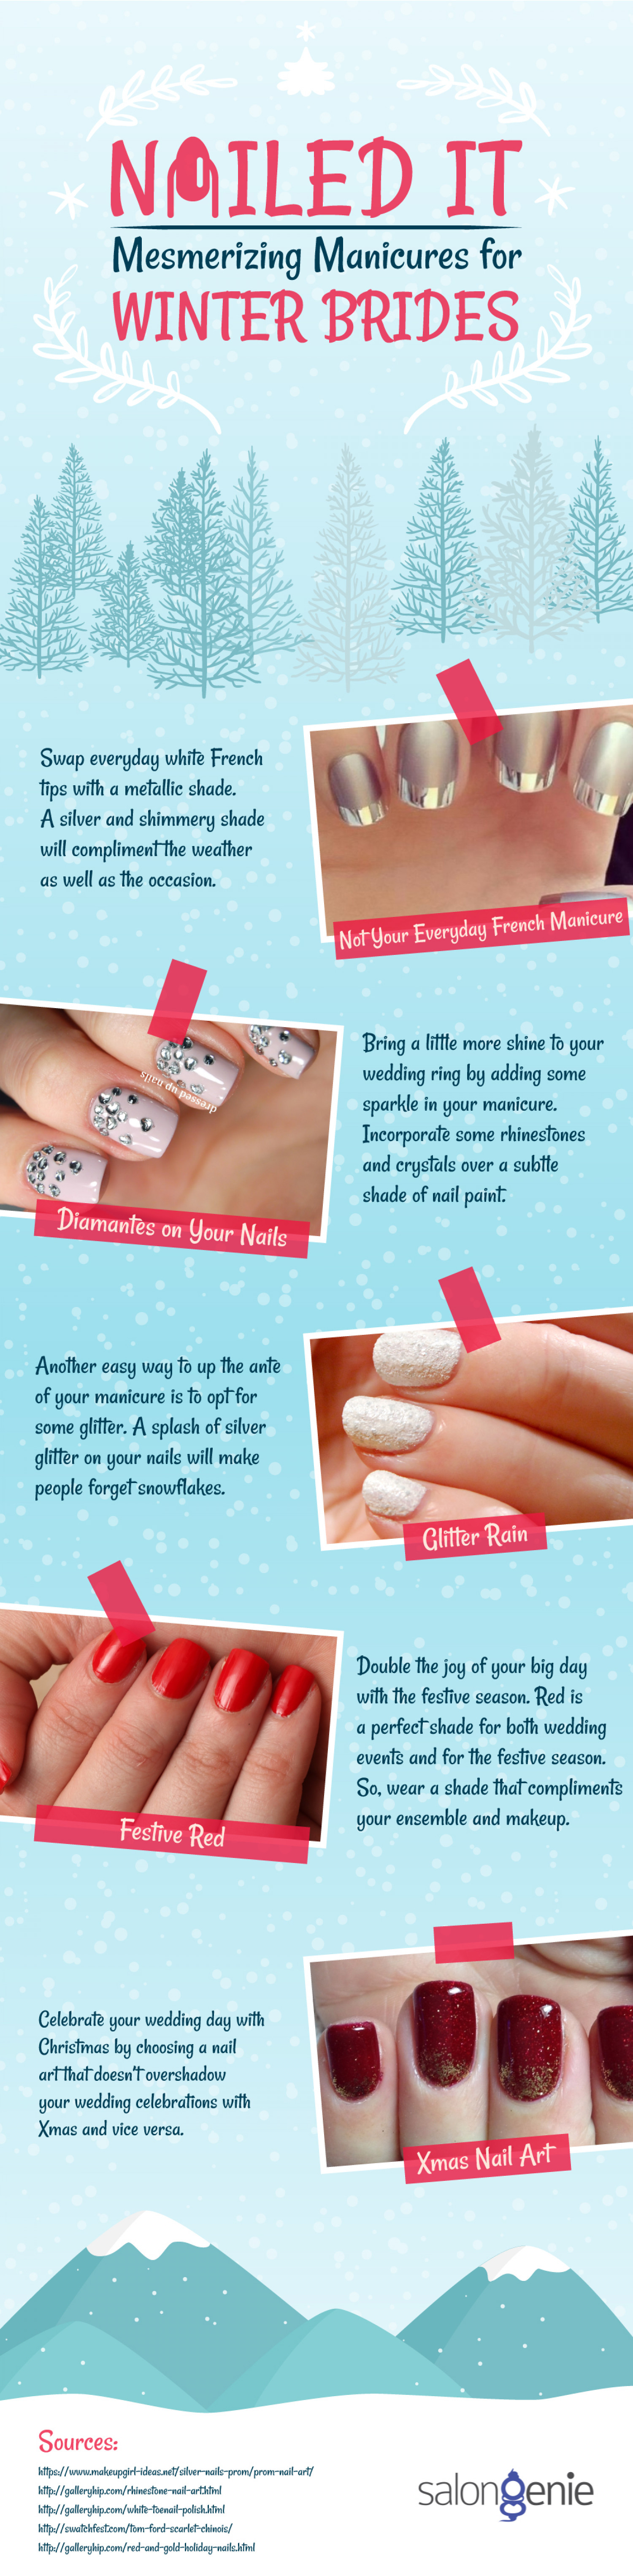 Mesmerizing Manicures For Winter Brides – Nailed It! | Visual.ly